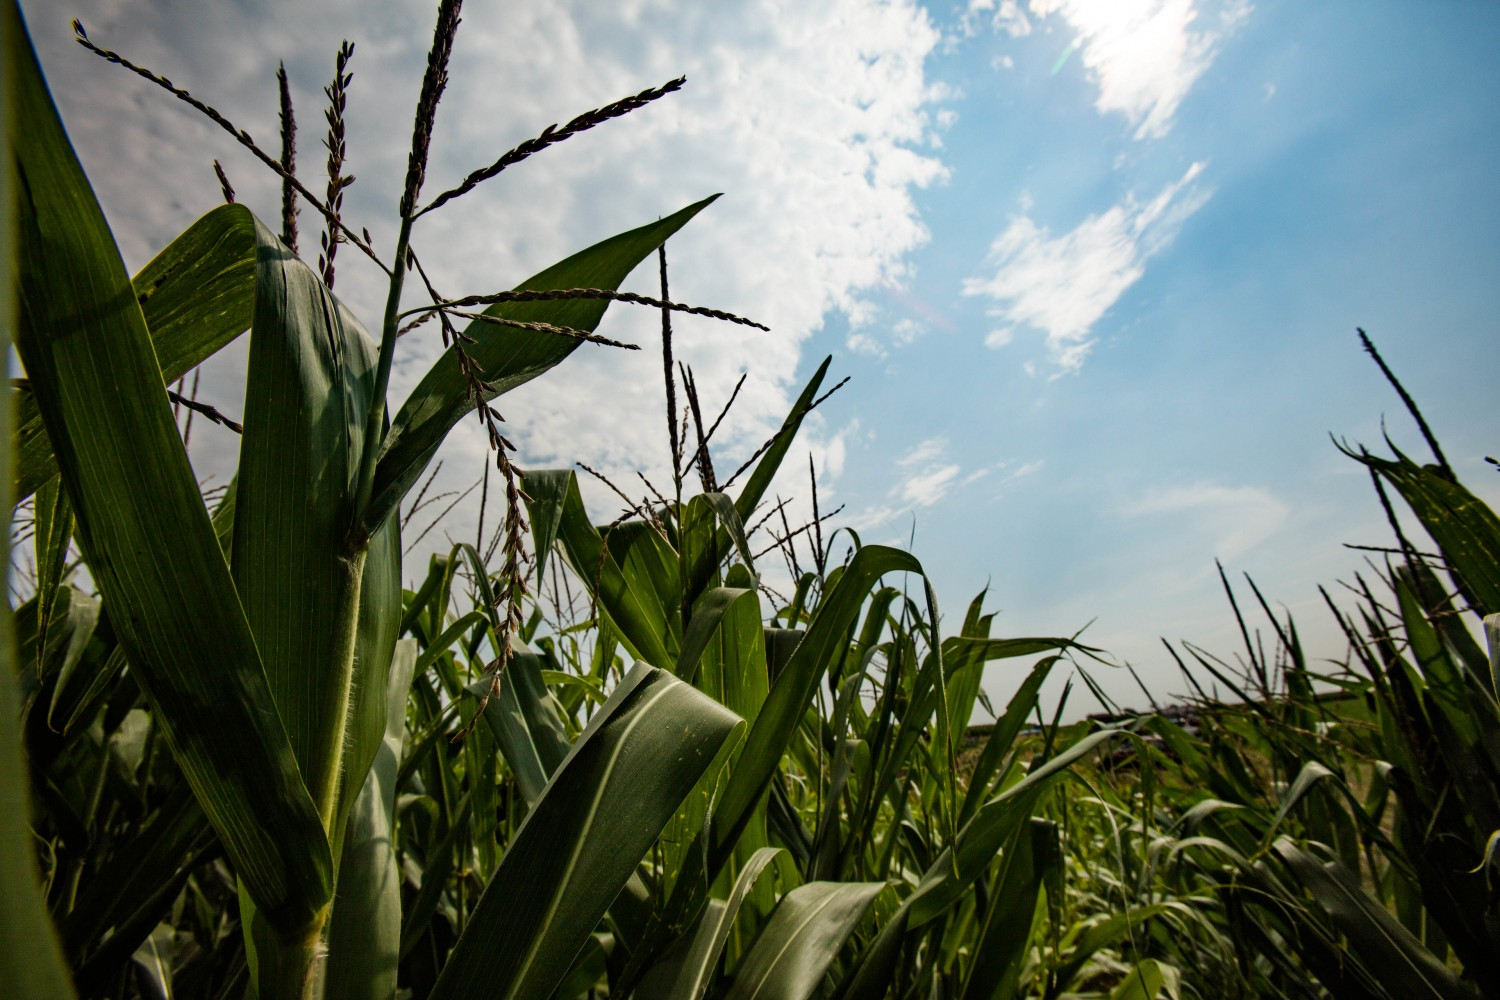 RIPE researchers have shown that by treating photosynthesis as a dynamic process, C4 plants like corn could improve their reaction to changes in light, improving overall yield.